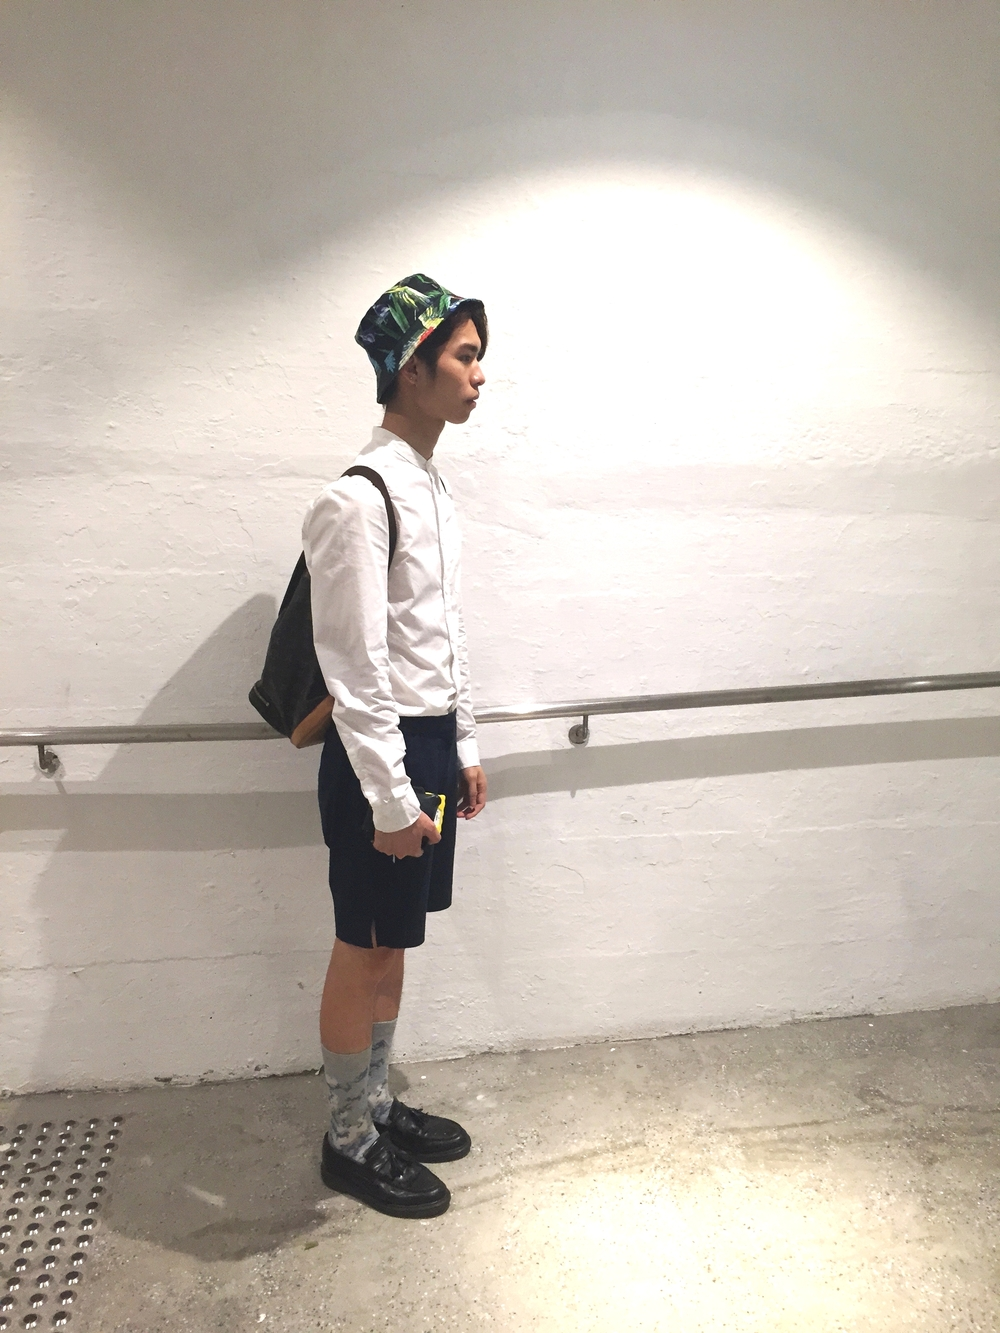 Mite wears :   Shirt - H&M  Shorts - Grandma Vintage   Socks - GV   Shoes - Dr. Martens   Hat - H&M  Bag - Louis Vuitton